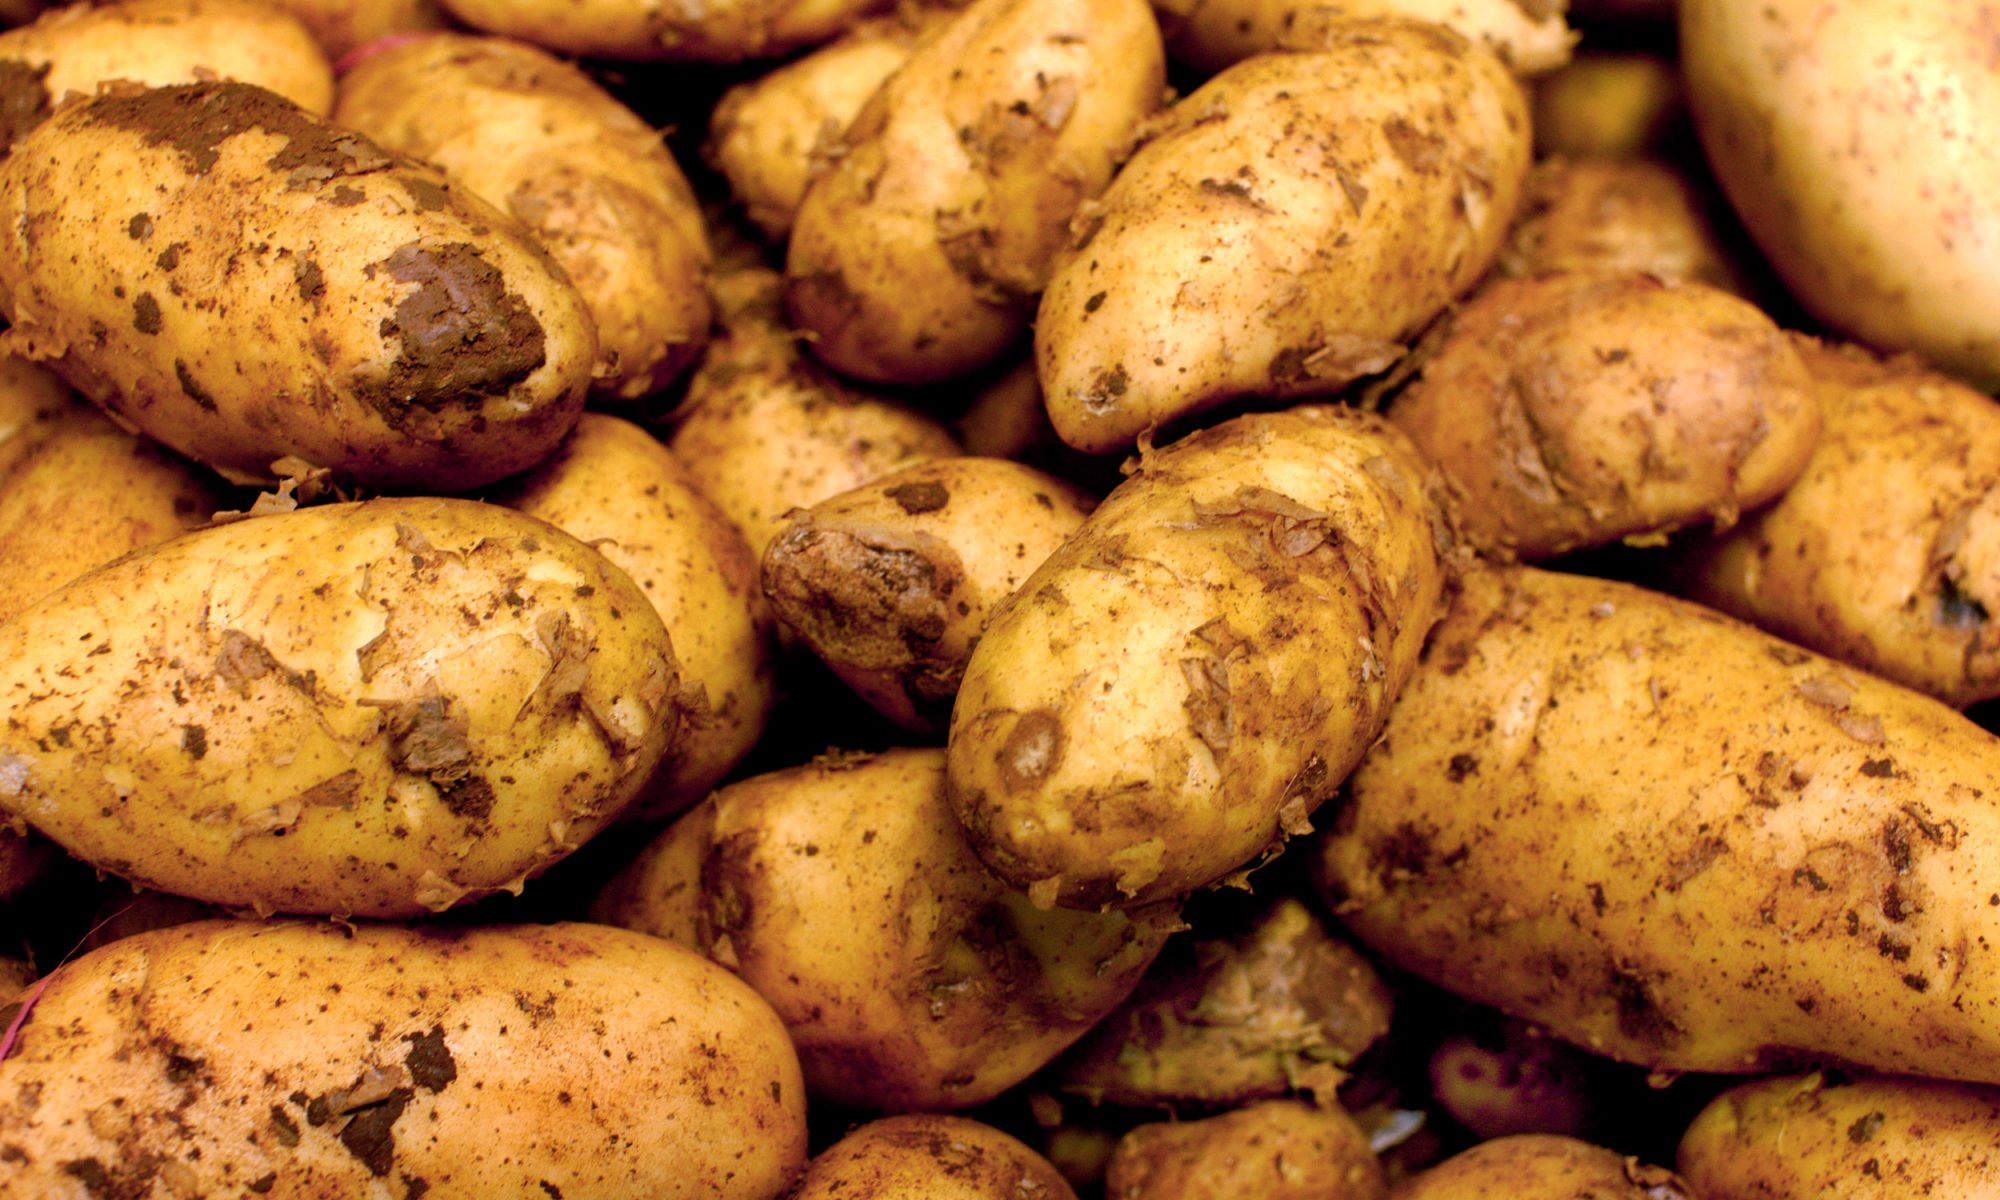 EC: We Can Grow Potatoes on Mars Now, Apparently